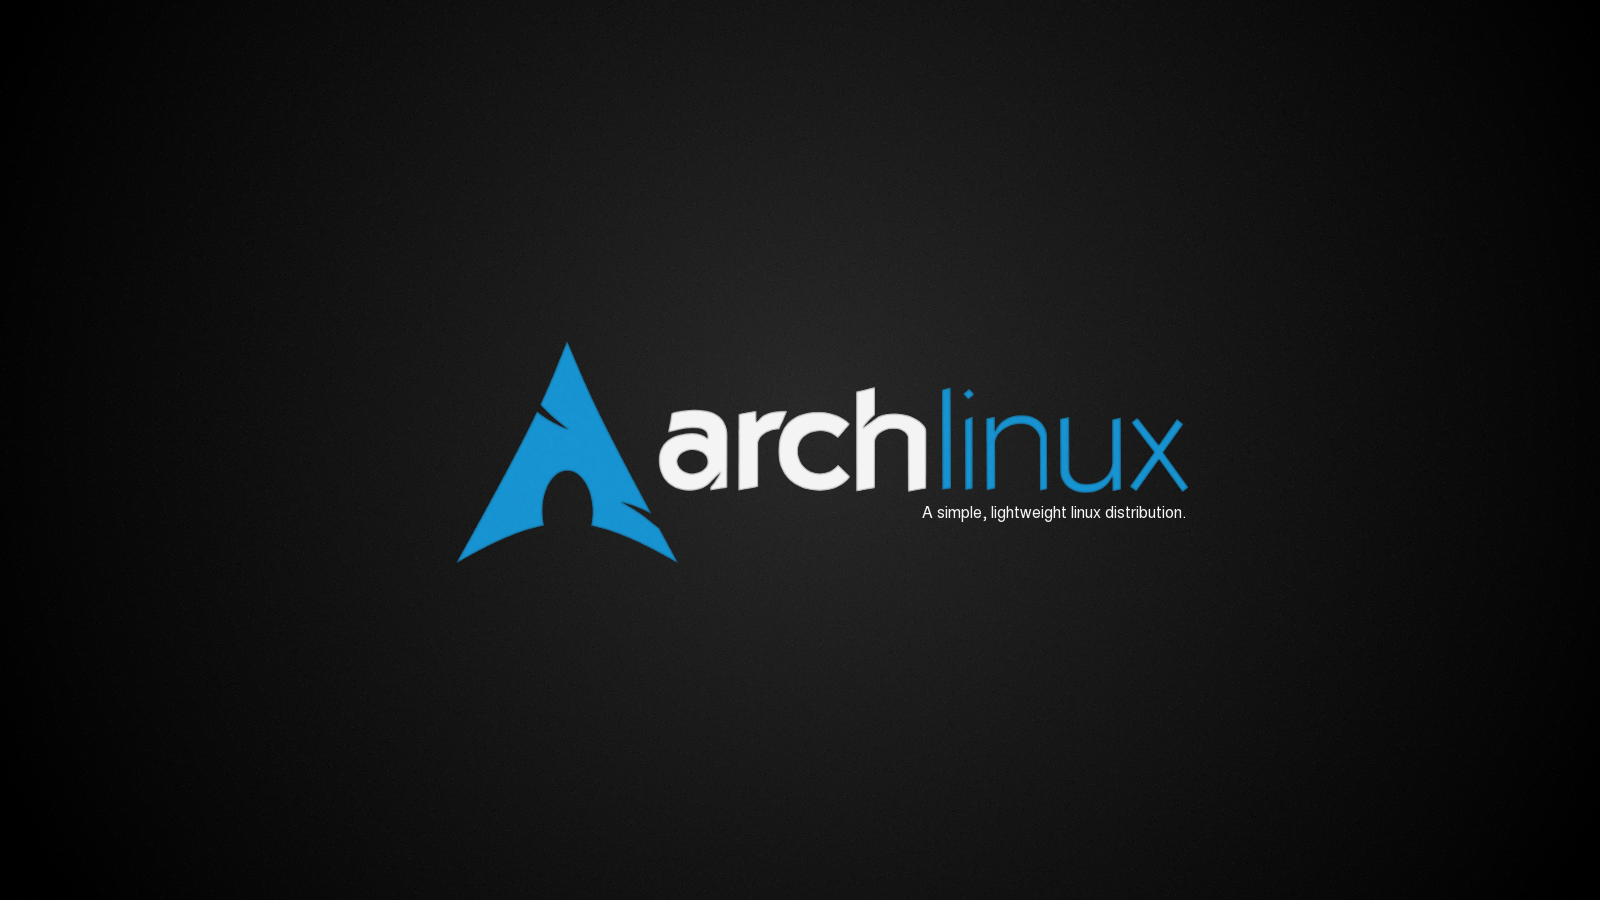 Arch linux download mirror